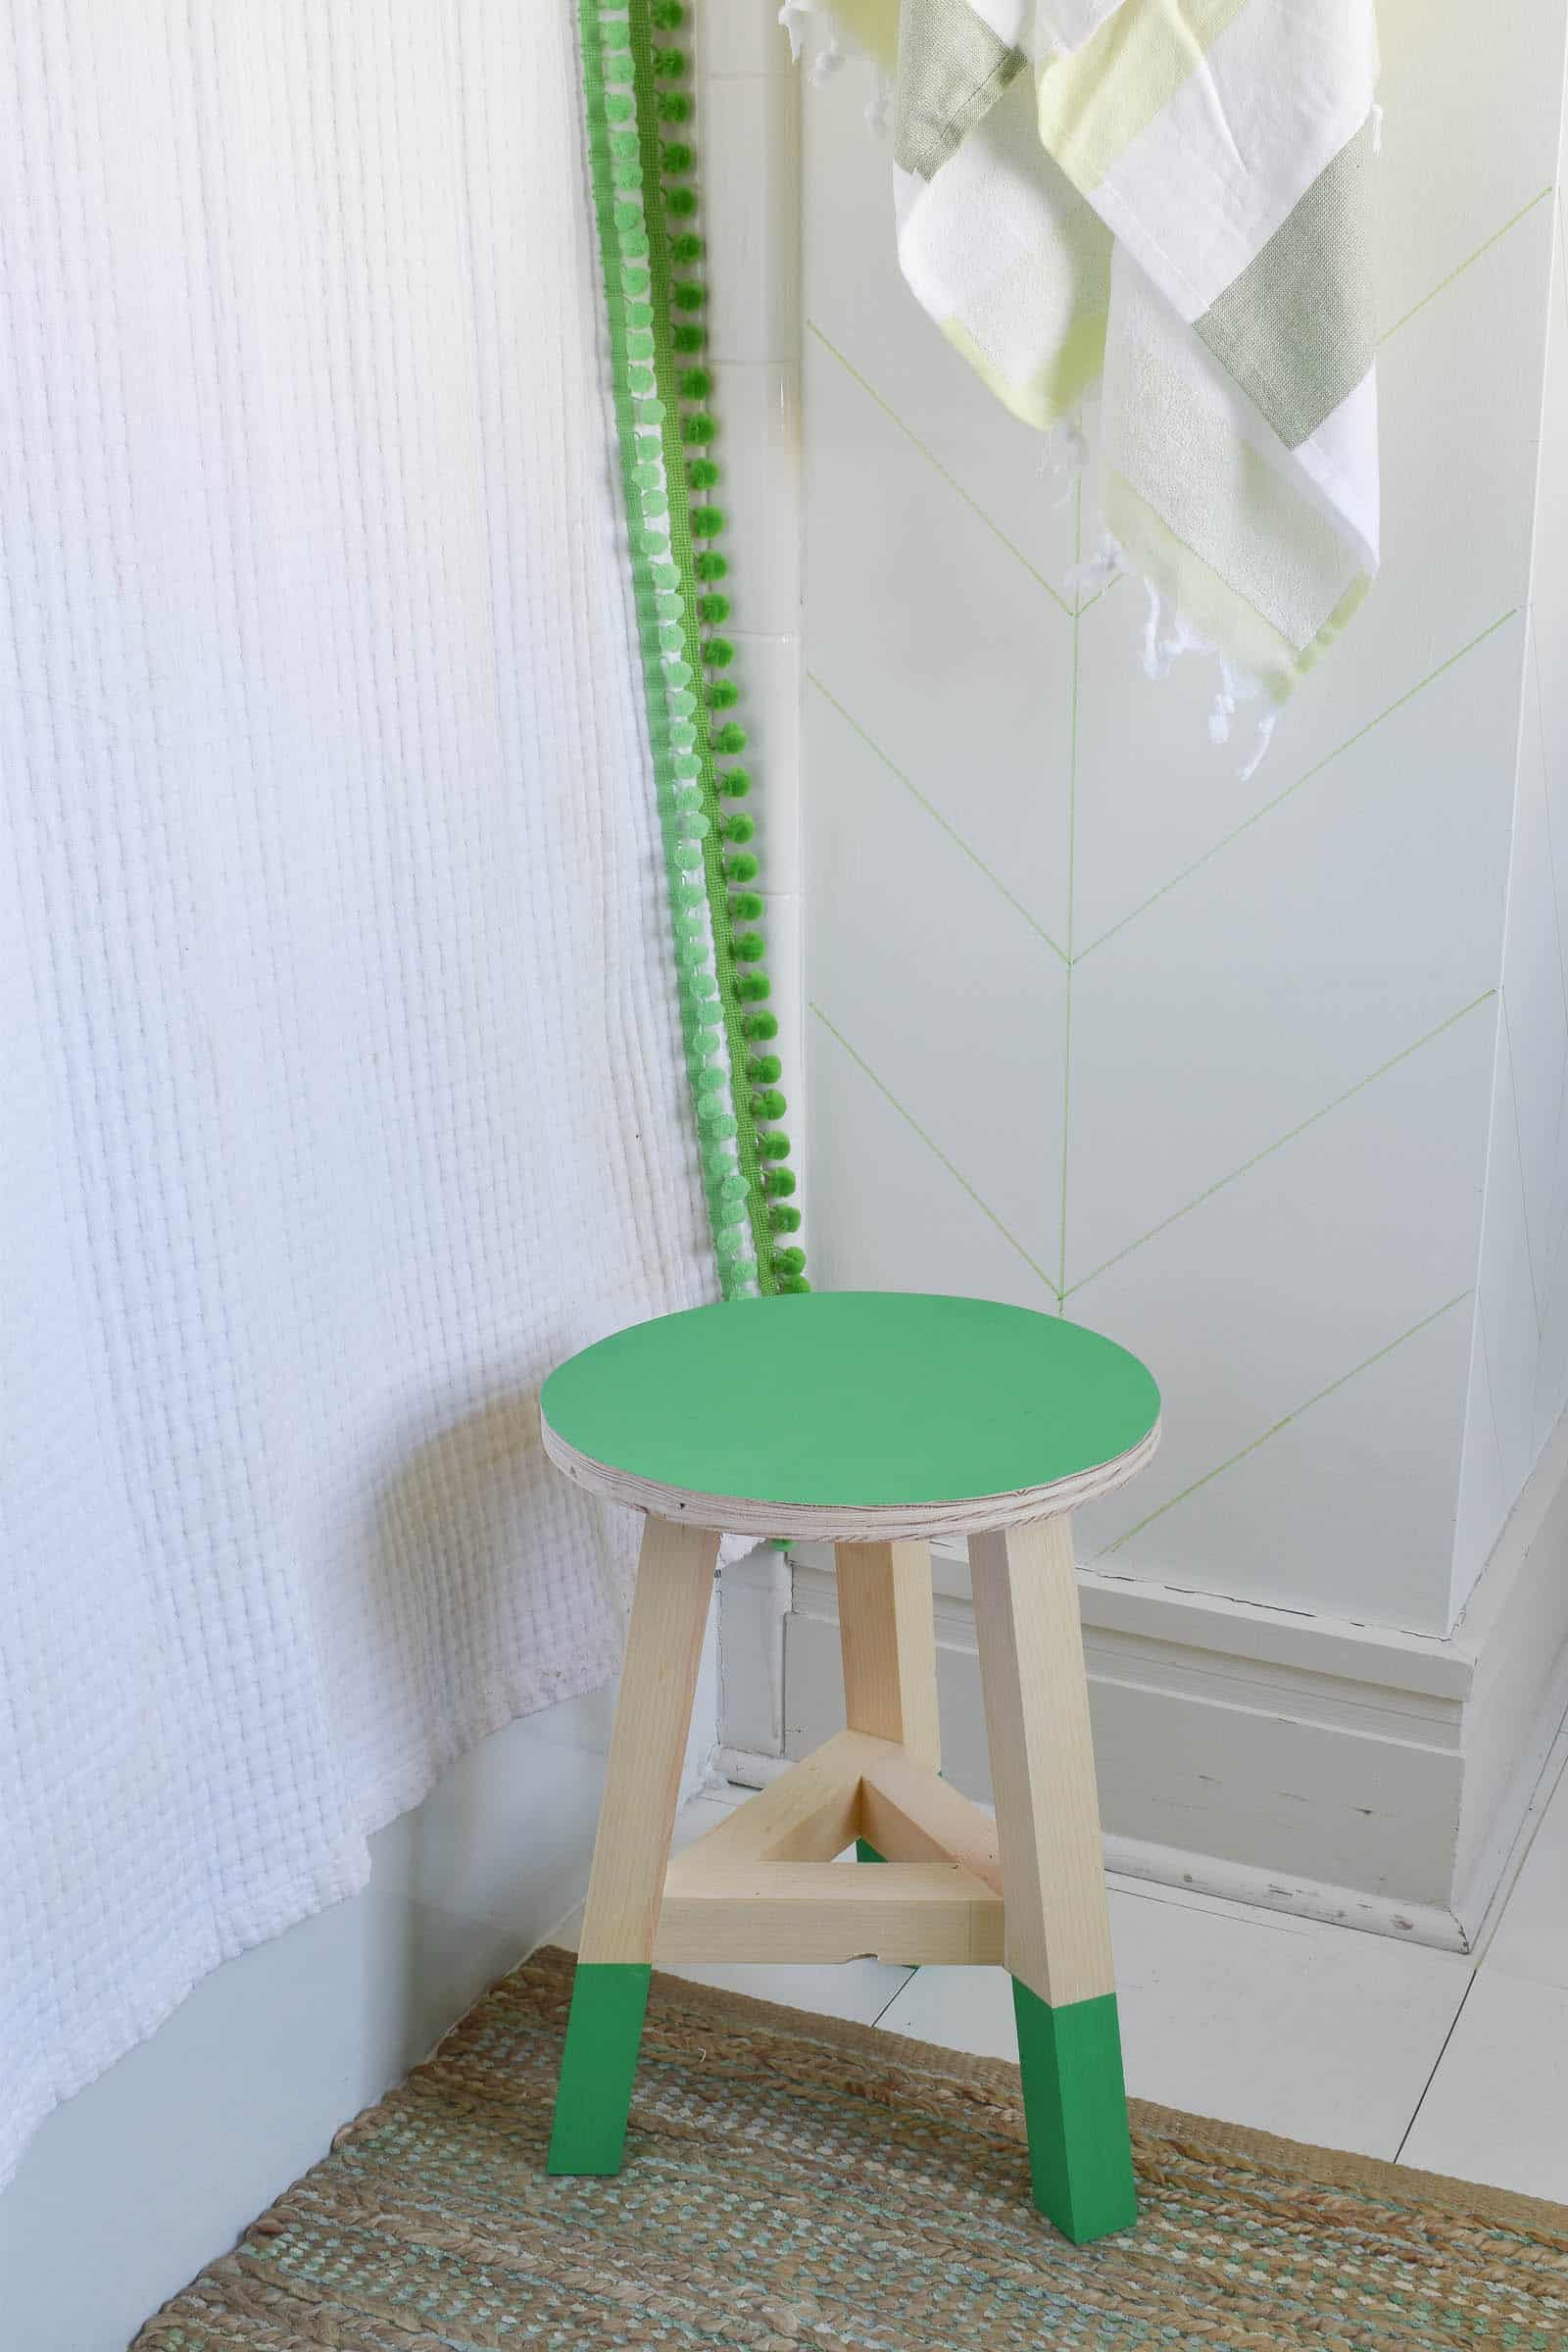 DIY stool for bathroom